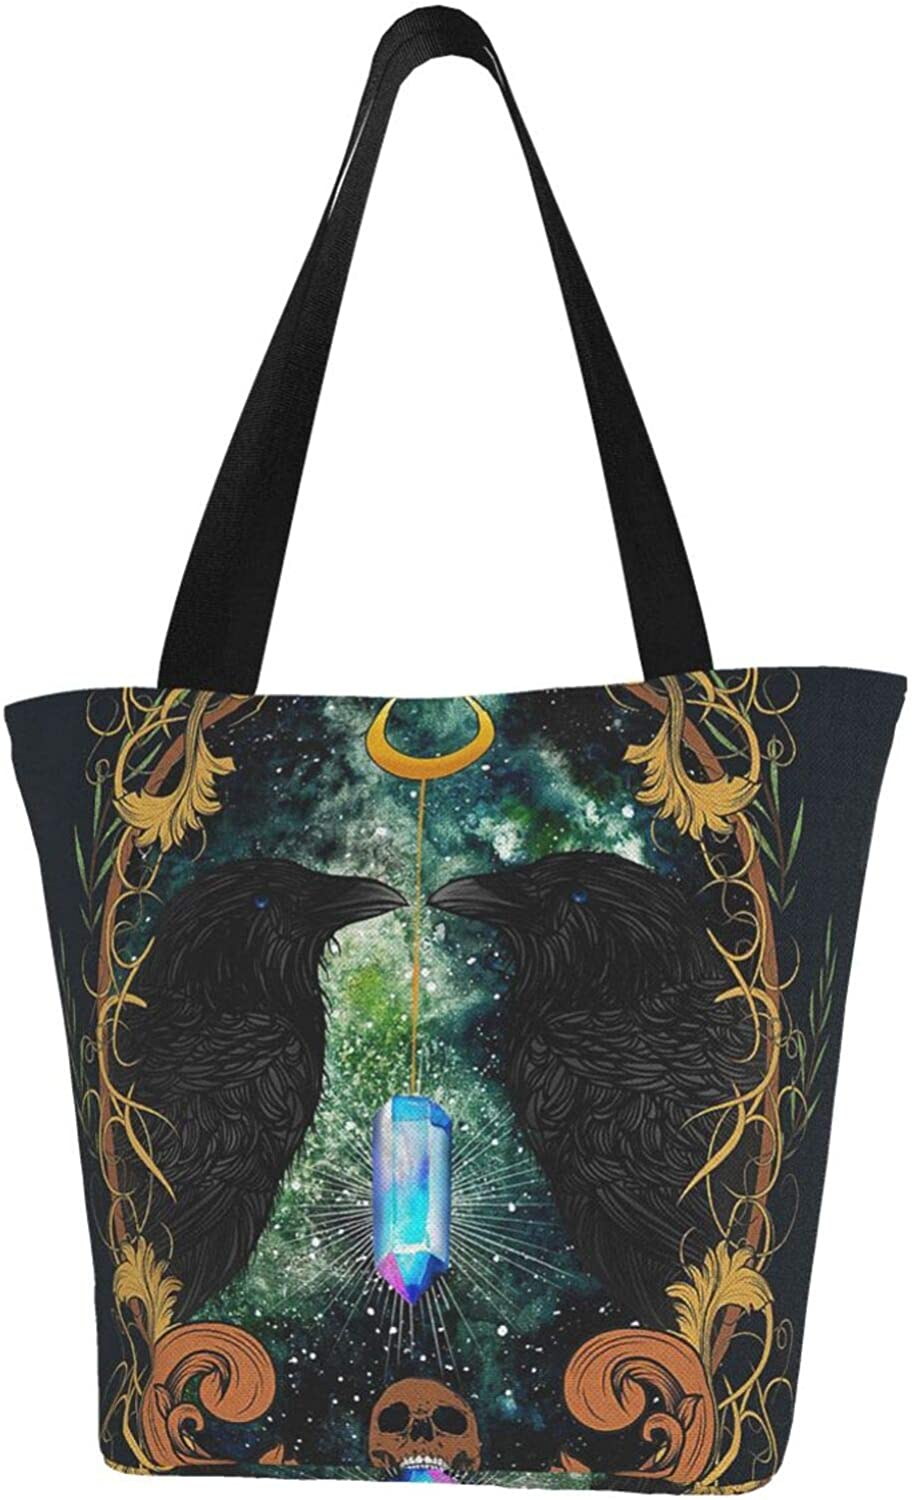 Wicca Wiccan Star Black Crow Diamond Themed Printed Women Canvas Handbag Zipper Shoulder Bag Work Booksbag Tote Purse Leisure Hobo Bag For Shopping